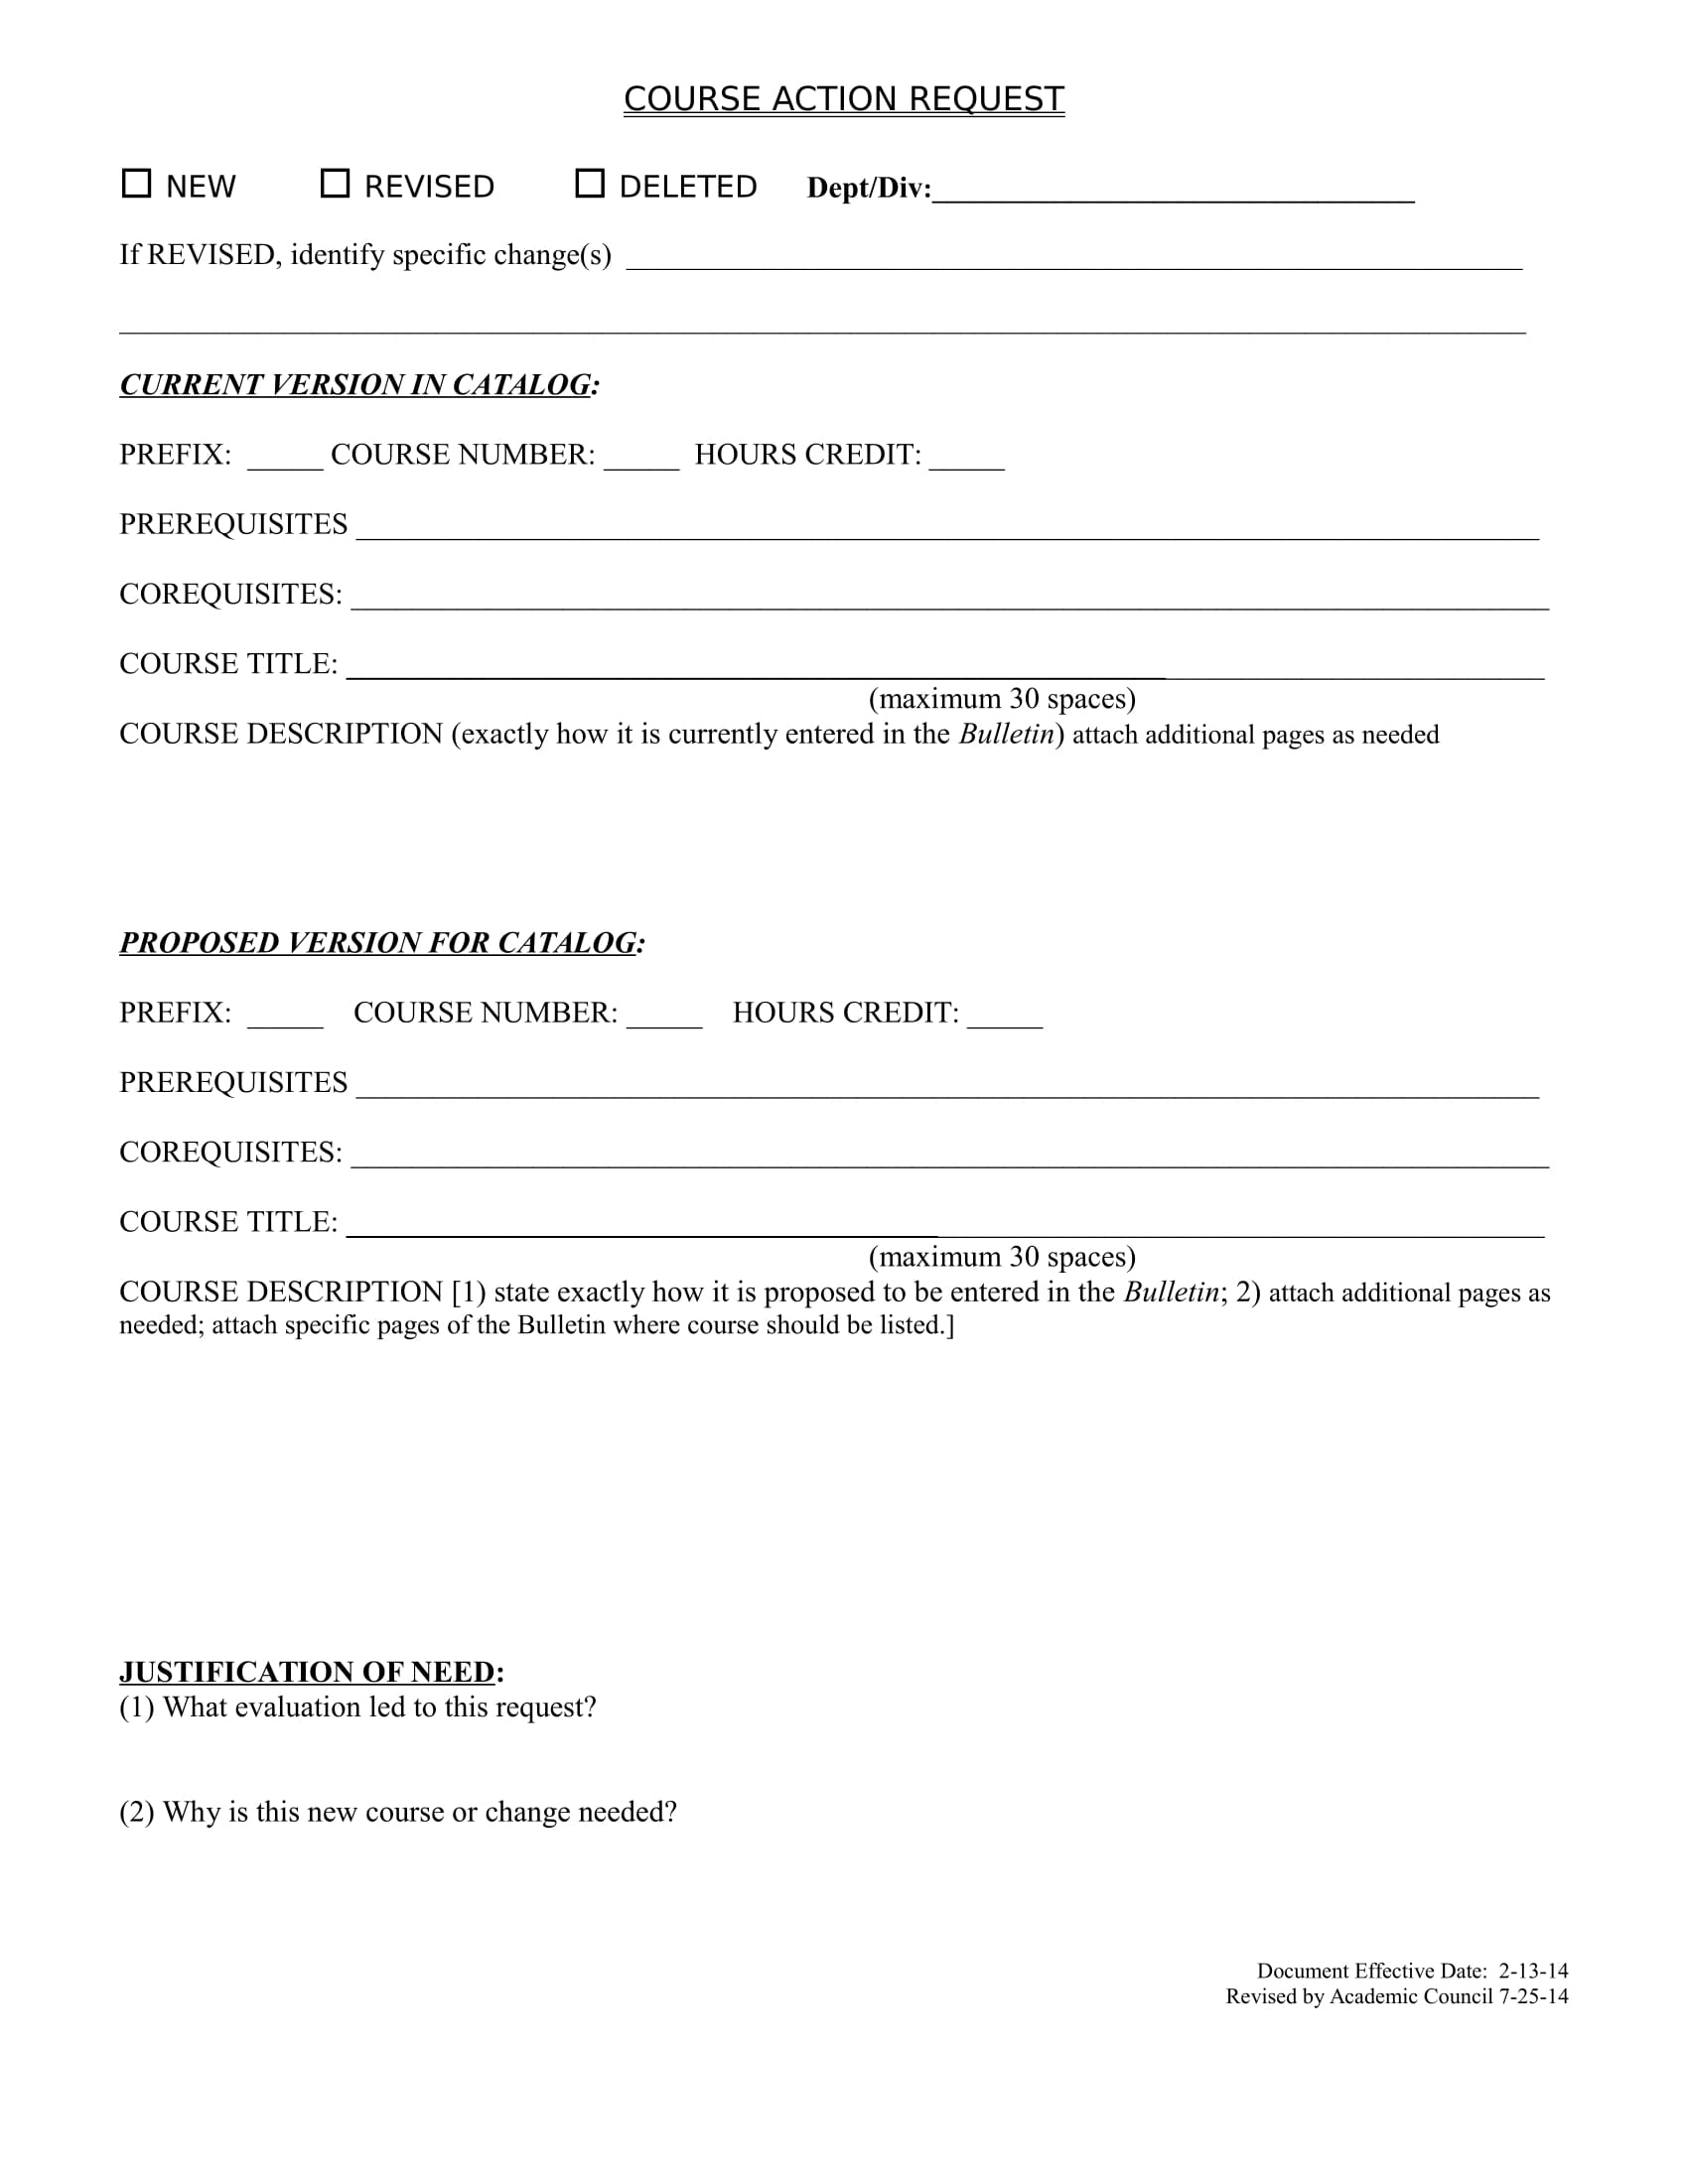 course action request form 1